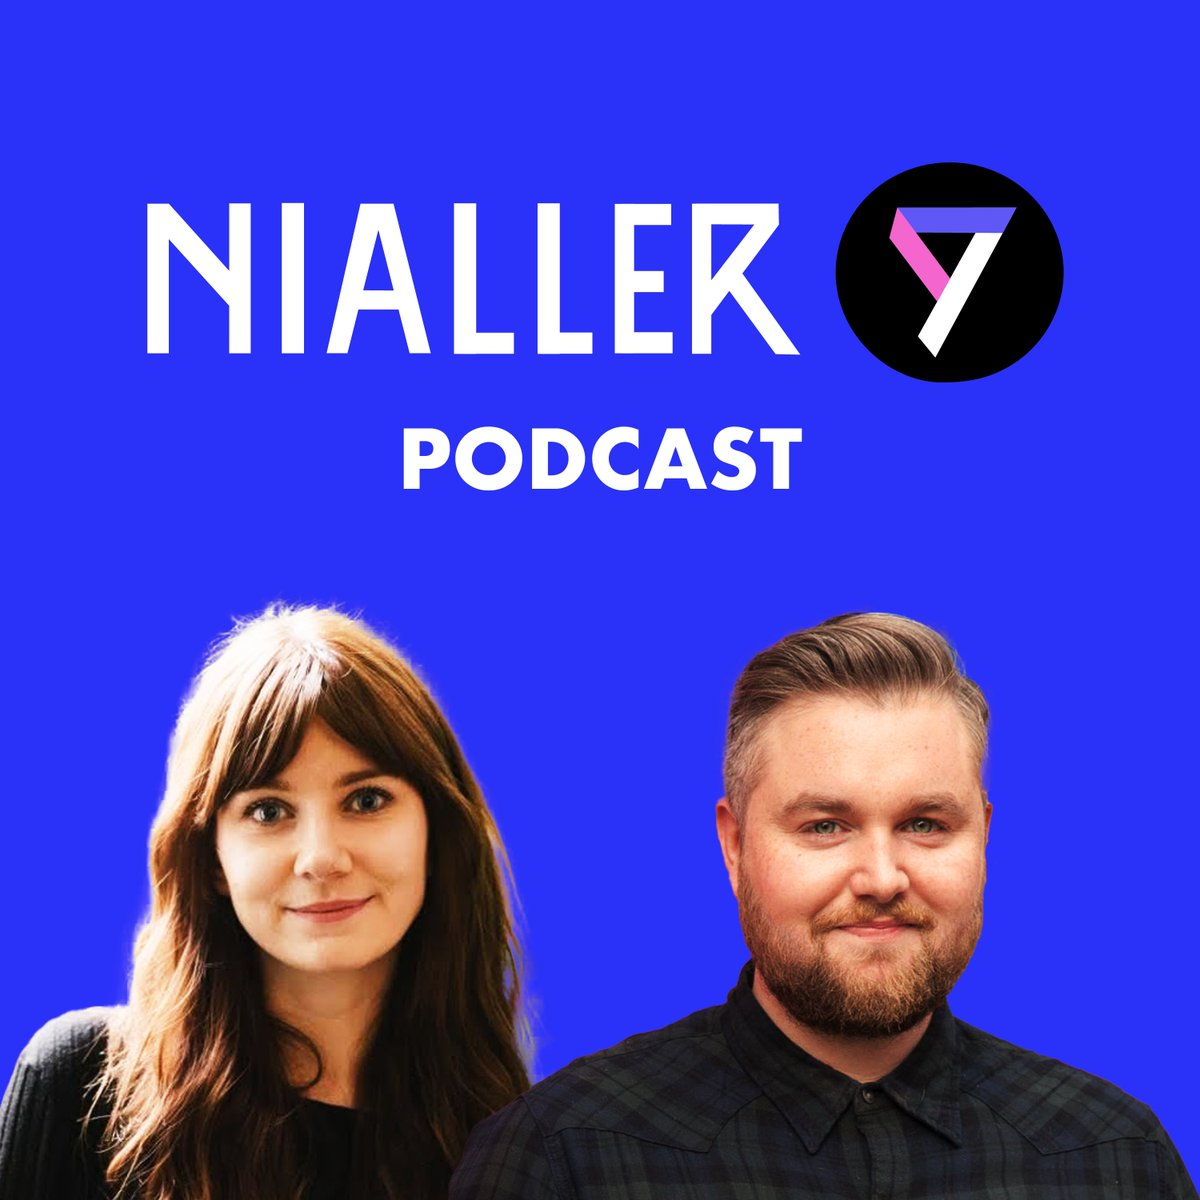 We recommended 10 albums from 2020 so far on the Nialler9 Podcast this week bit.ly/2VKWjC9